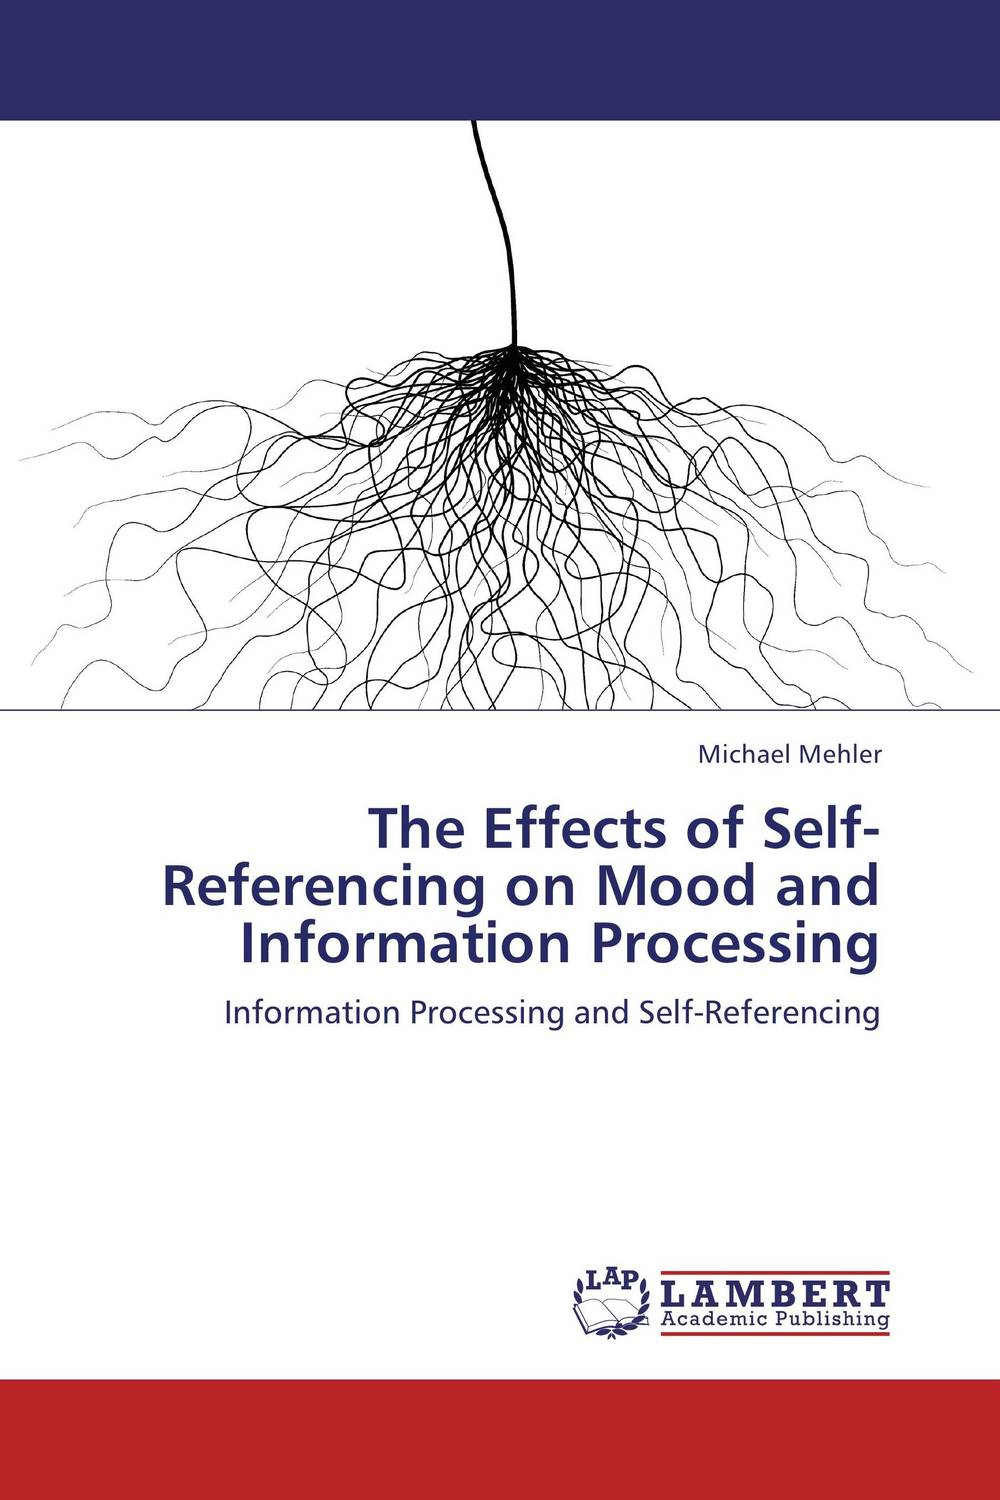 The Effects of Self-Referencing on Mood and Information Processing